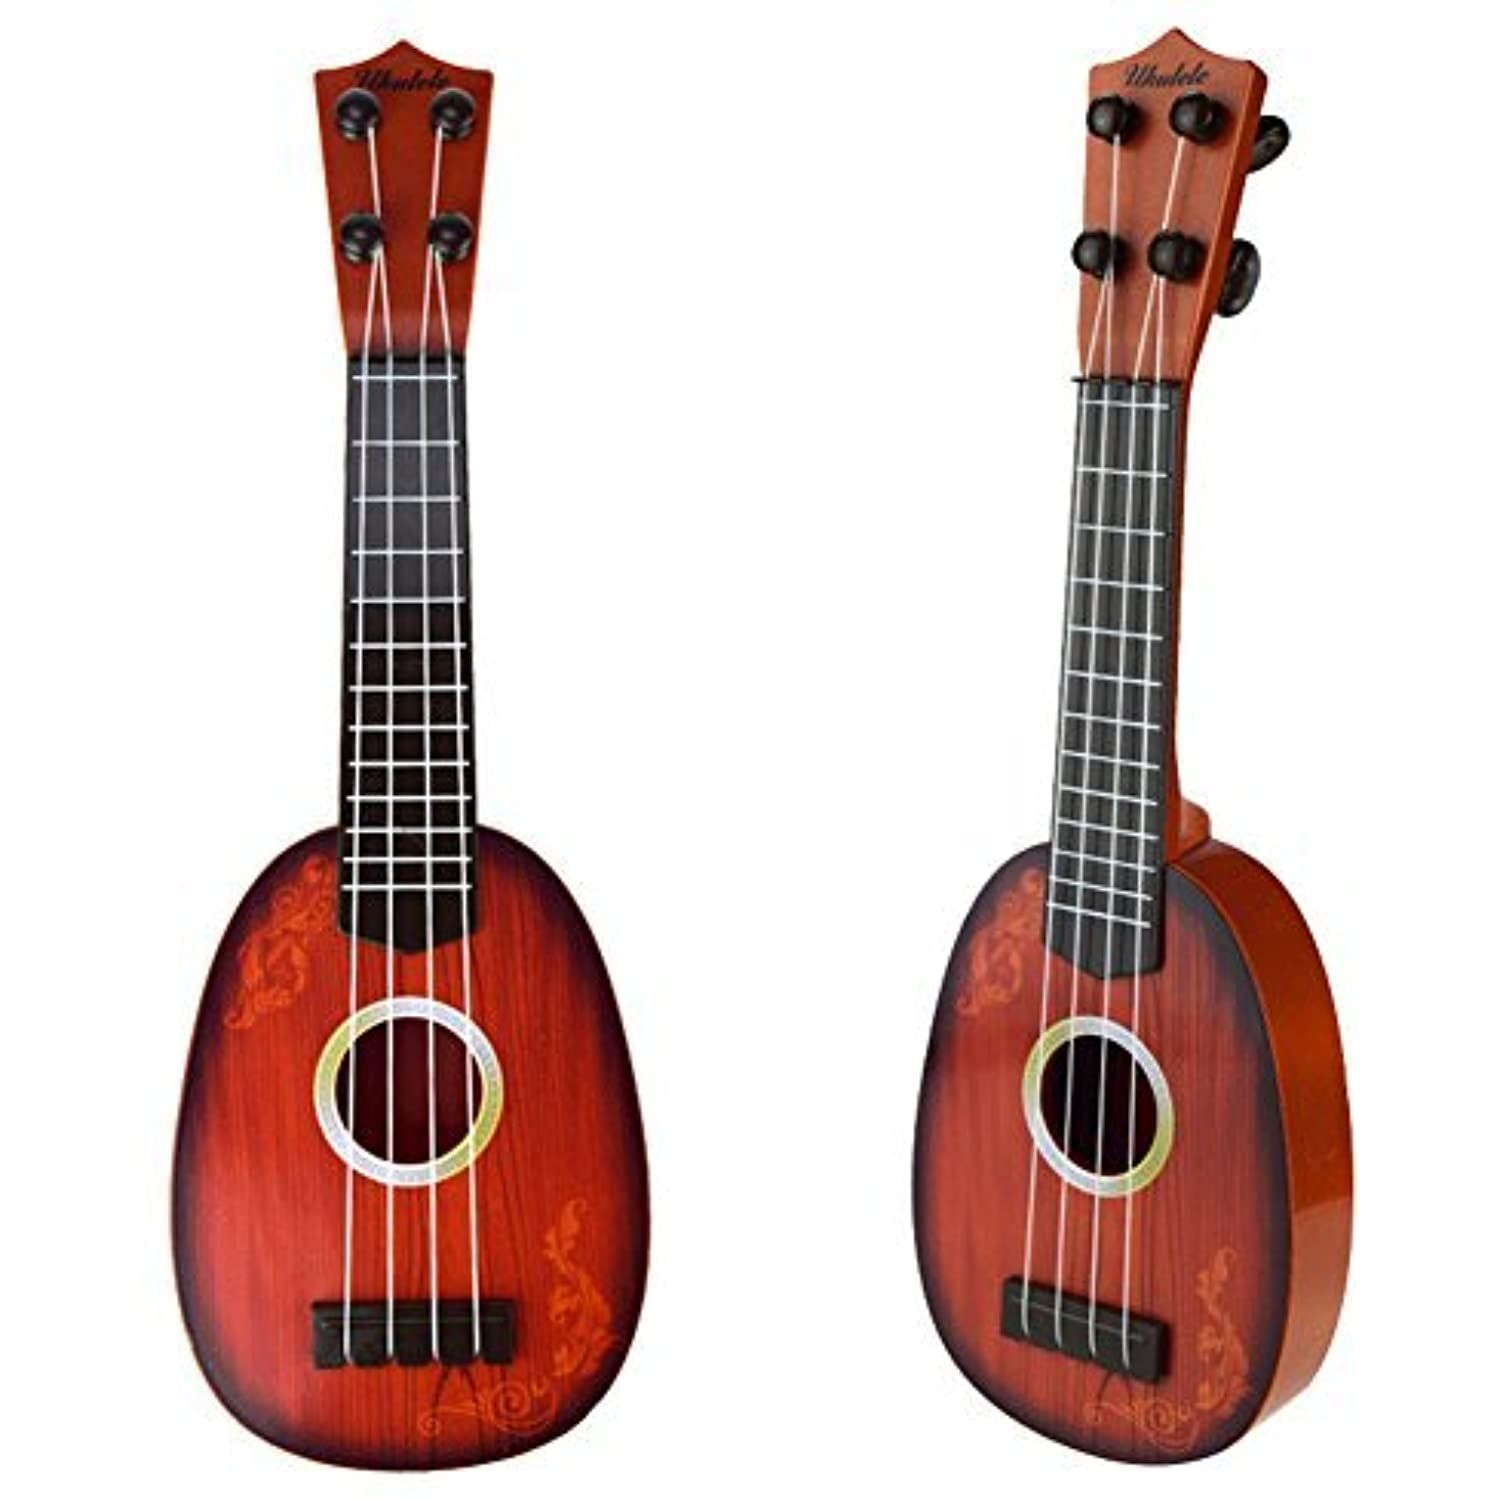 Grocery House Cute Mini Ukulele Toy for Kids, Musical